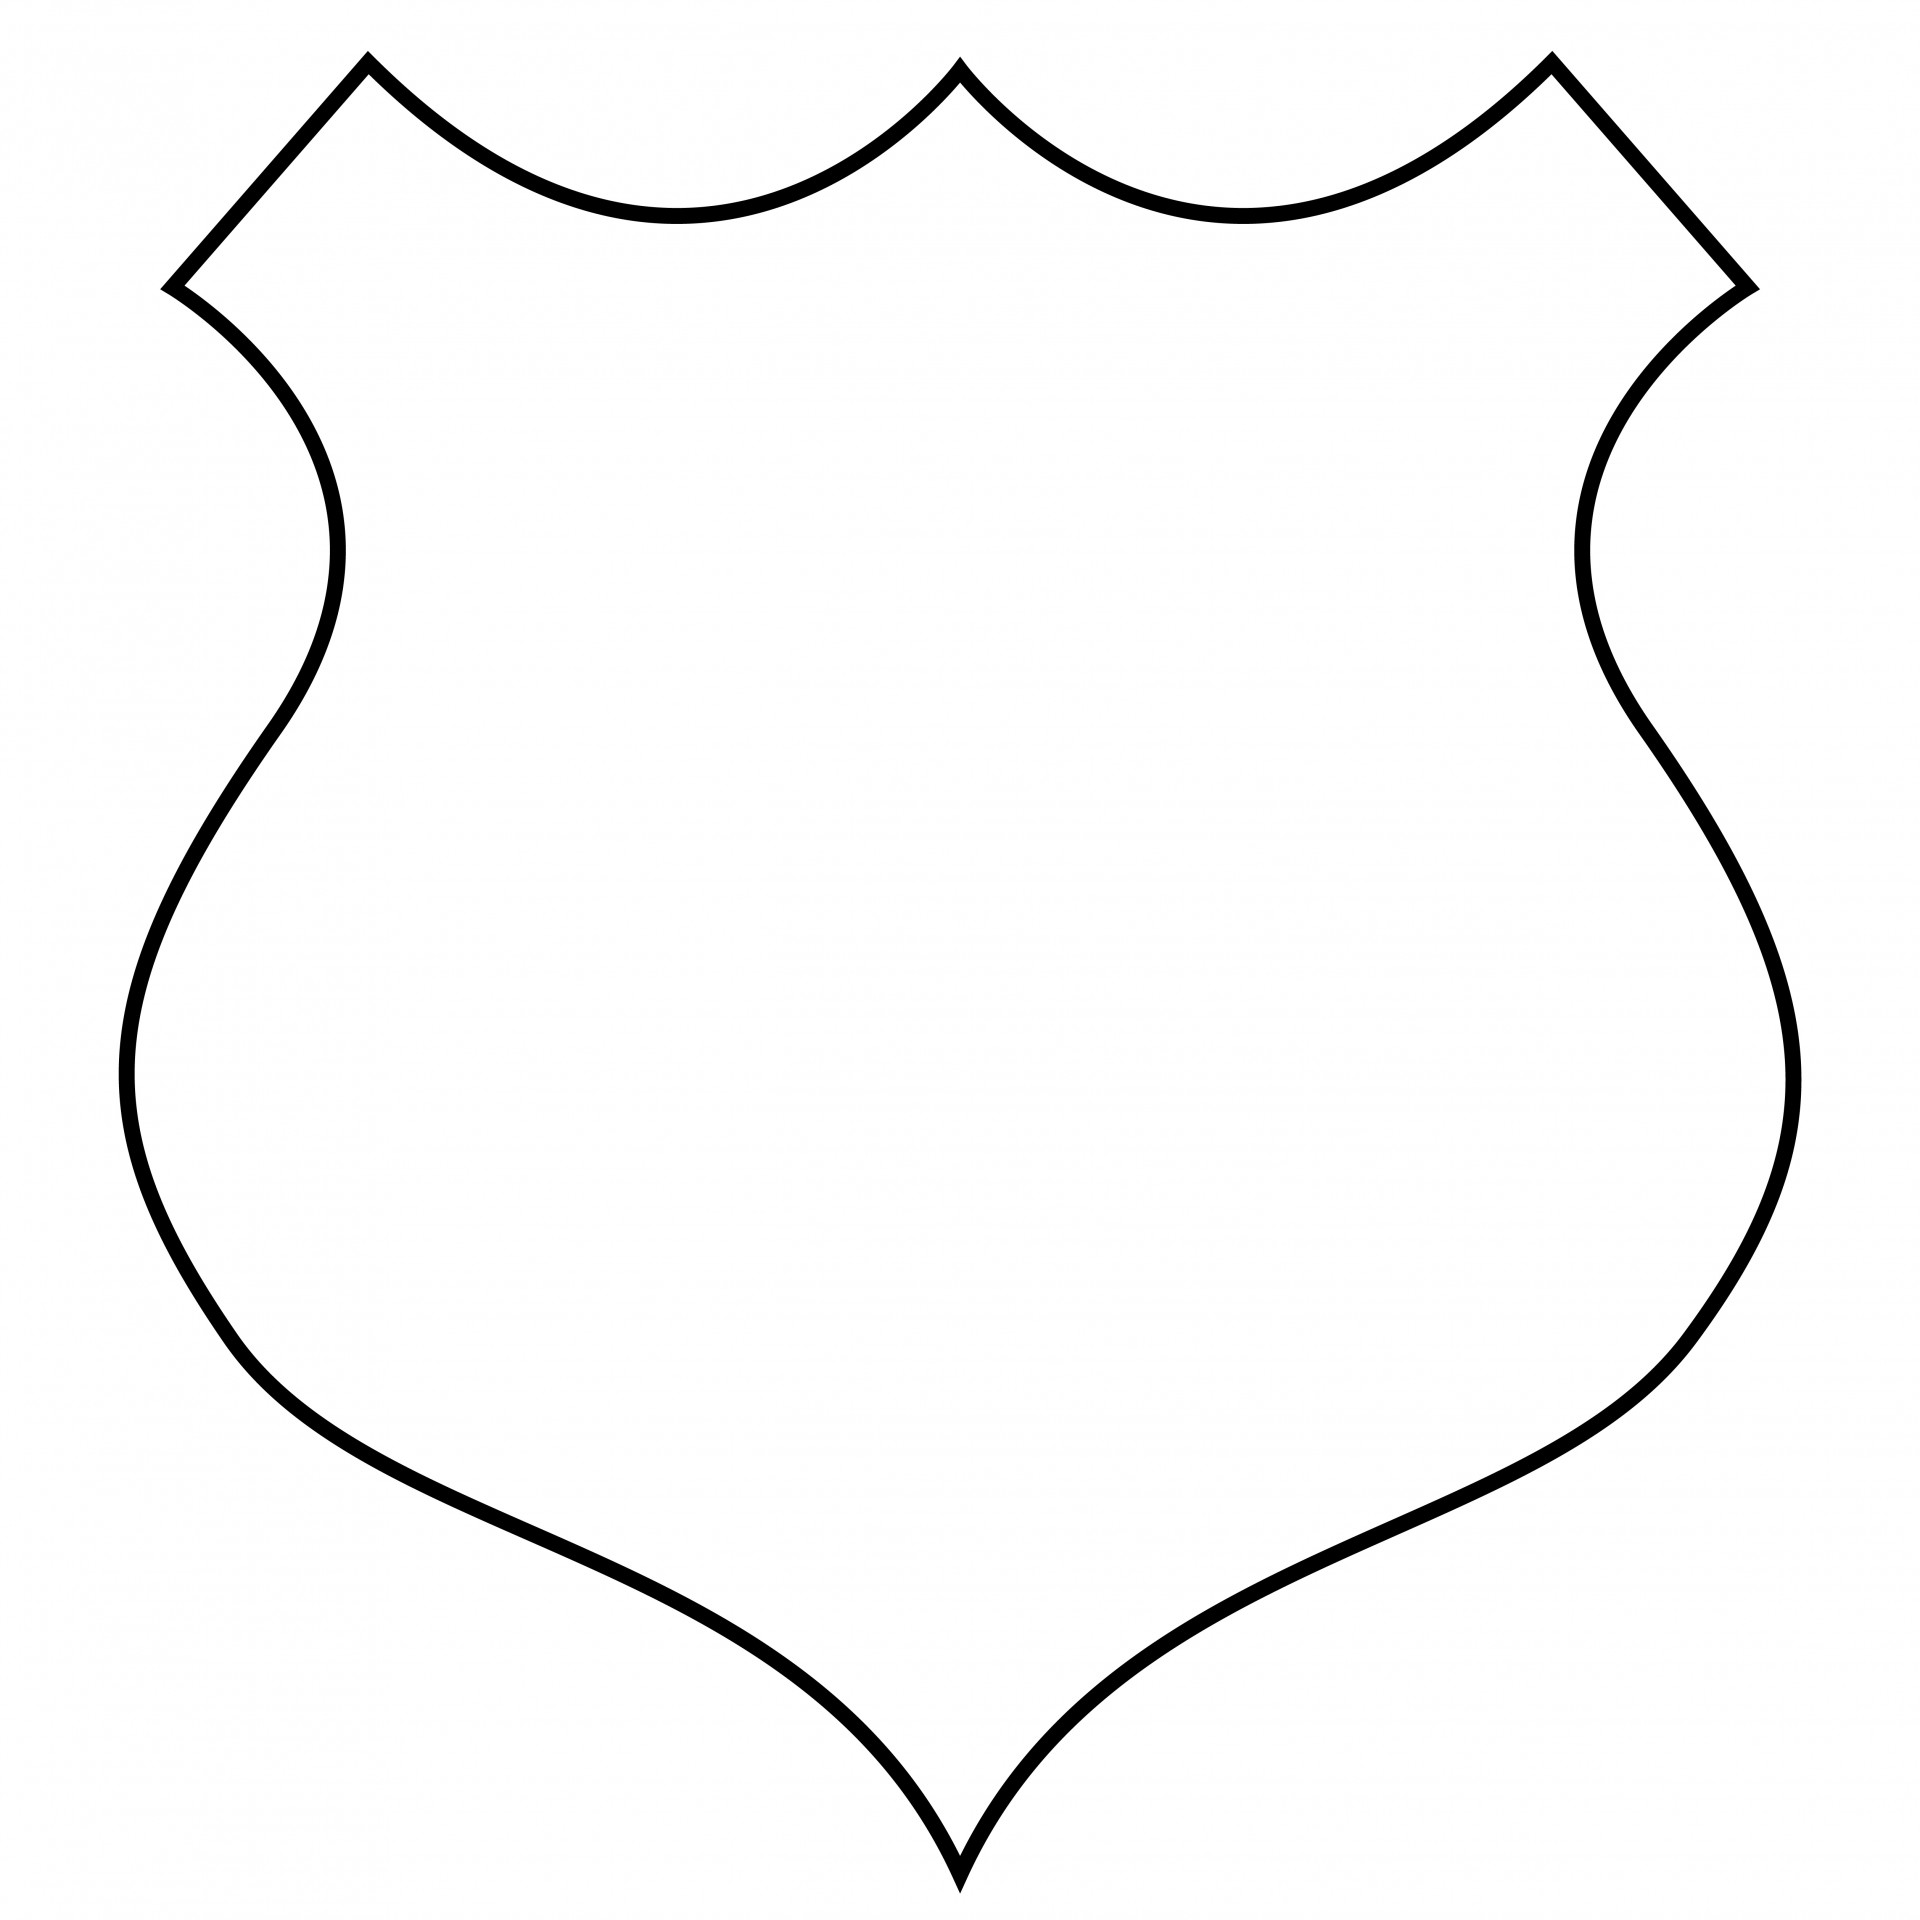 Badge clipart outline. Shield free stock photo